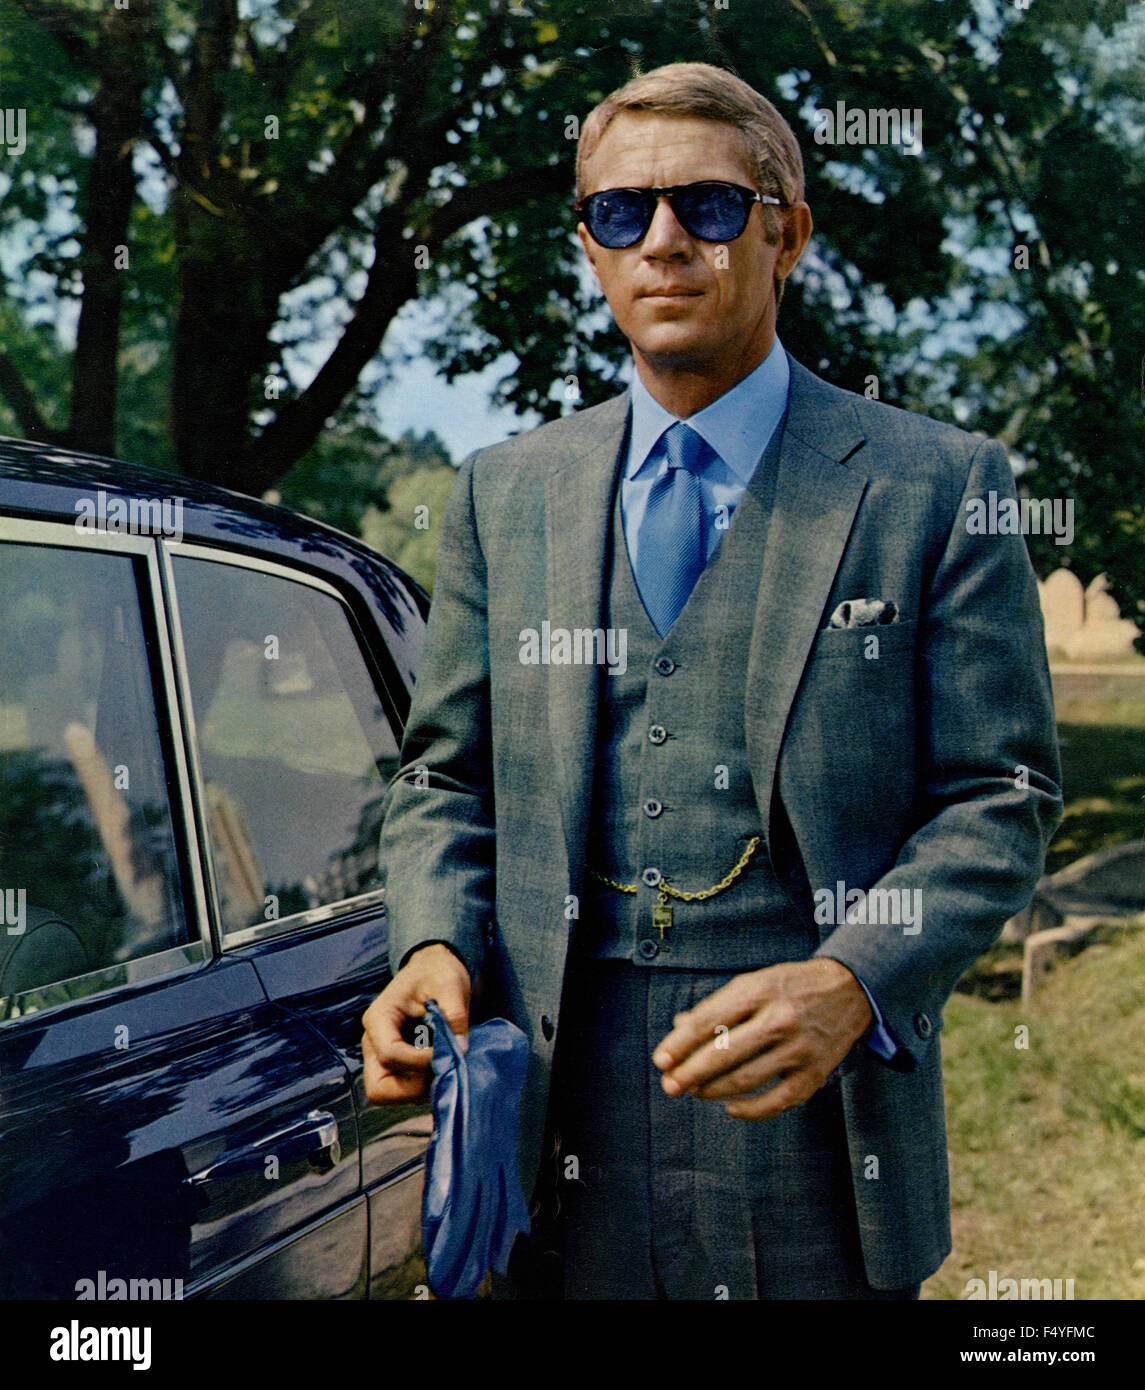 The actor Steve McQueen in a scene from the film 'The Thomas Crown Affair', 1968 - Stock Image